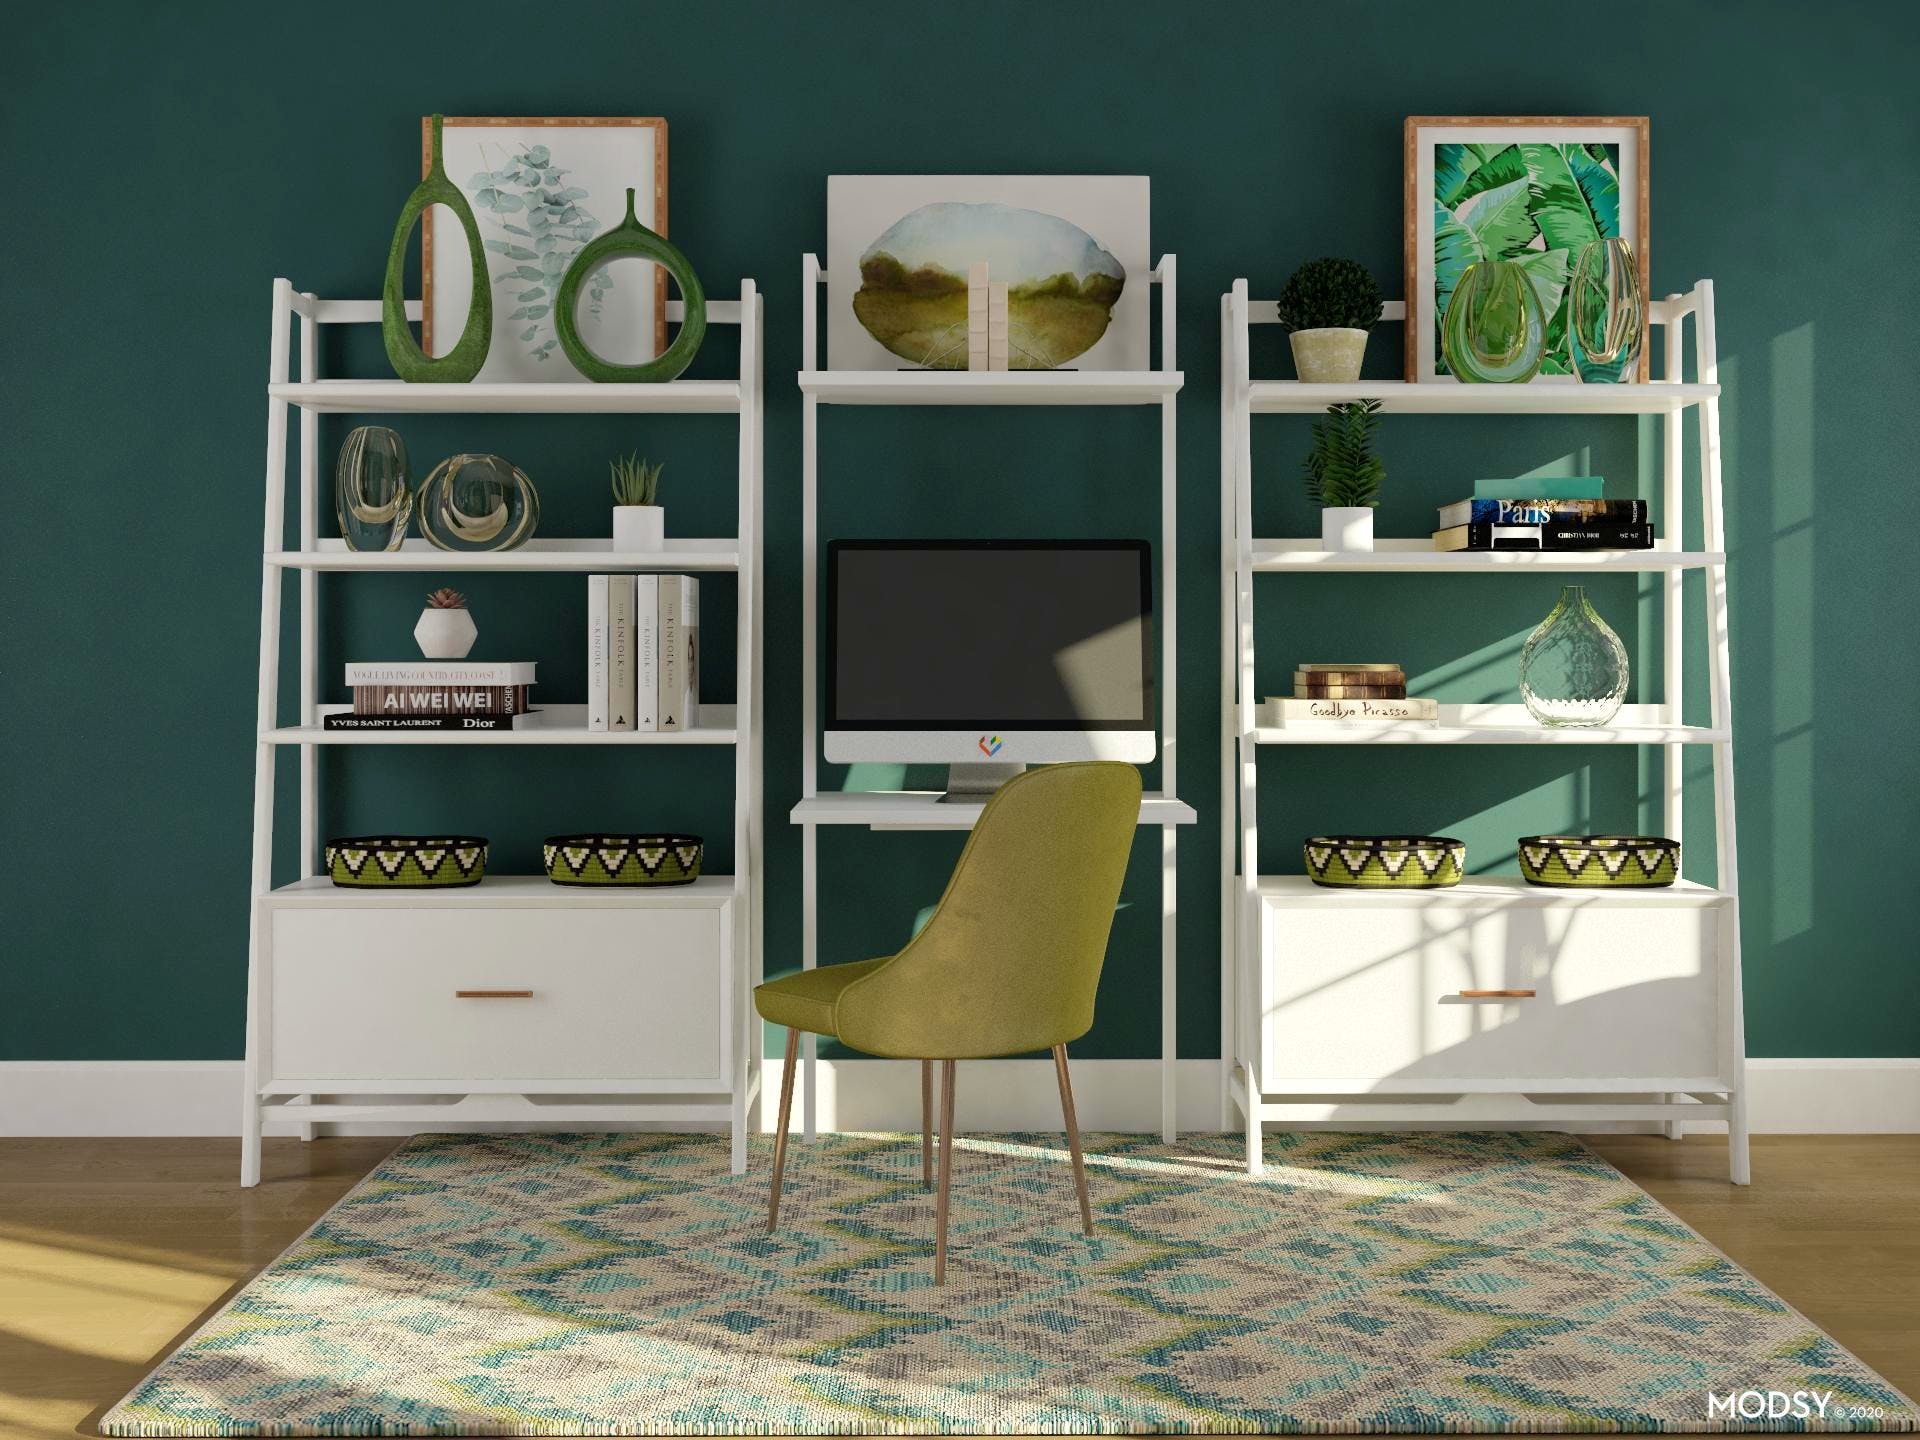 Shelving Decor in Your Home Office